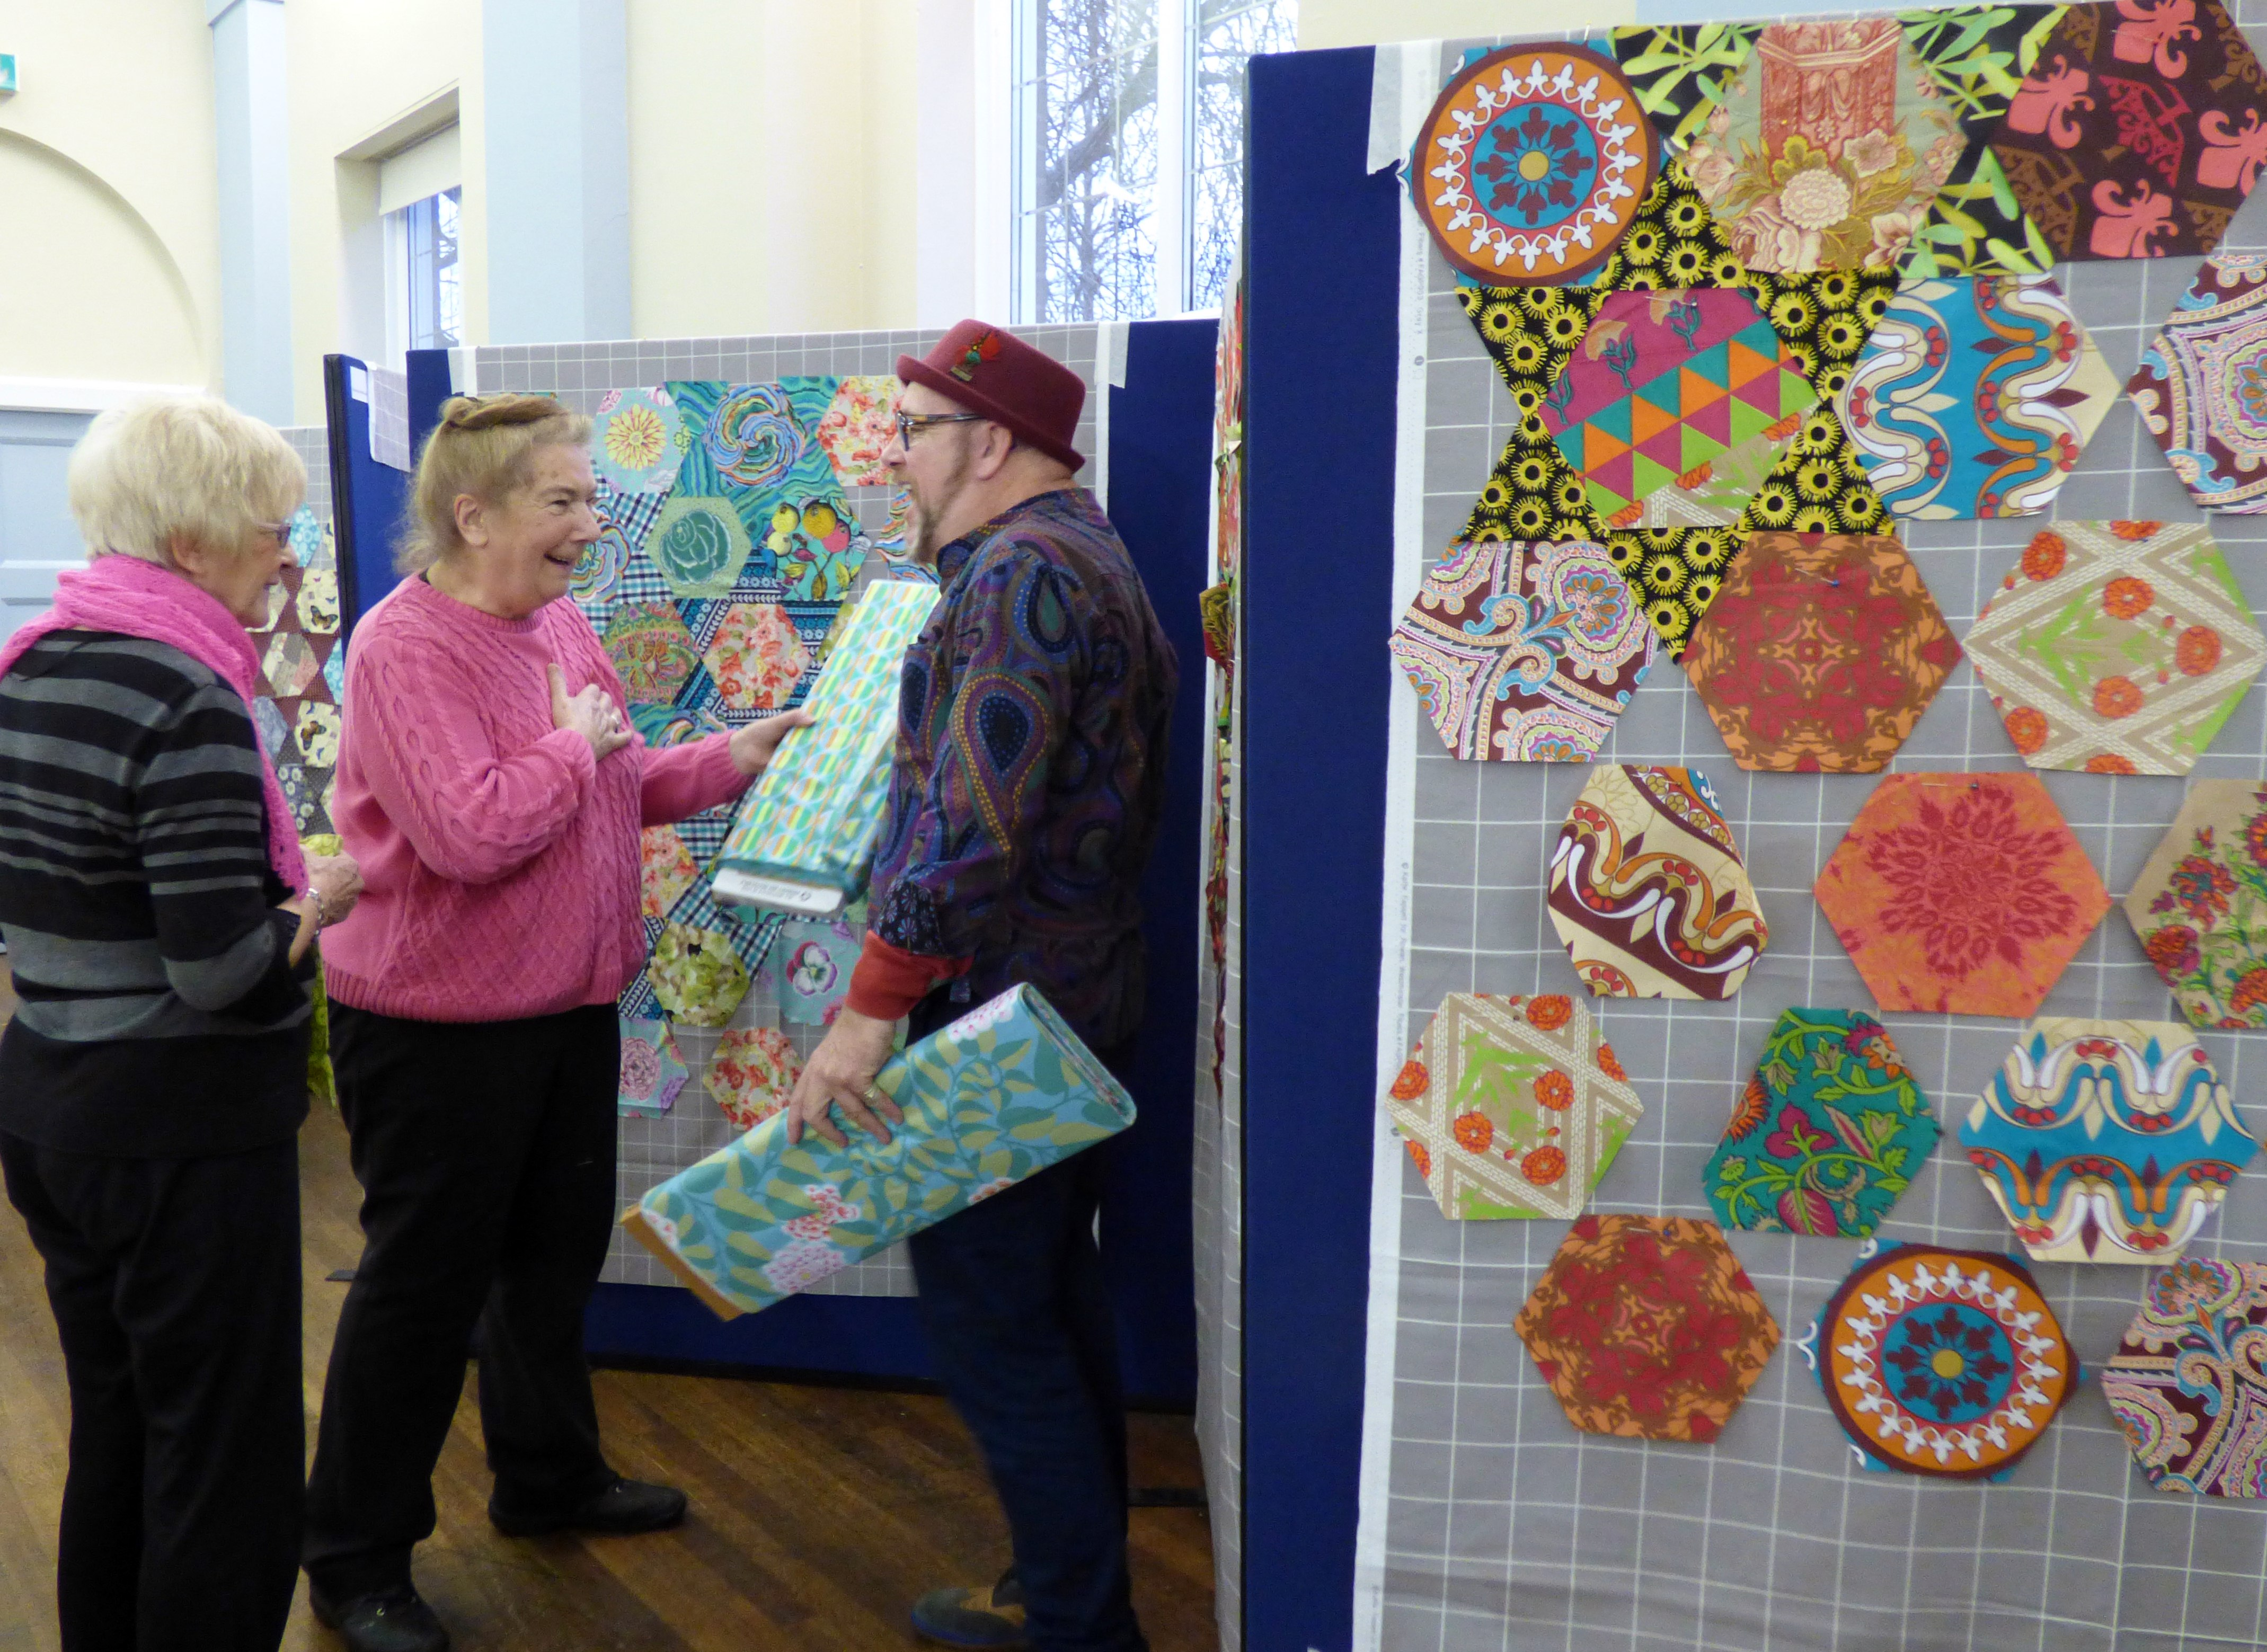 Vicky is sharing a joke with Brandon- Kaffe Fassett workshop, All Hallows, Dec 2016